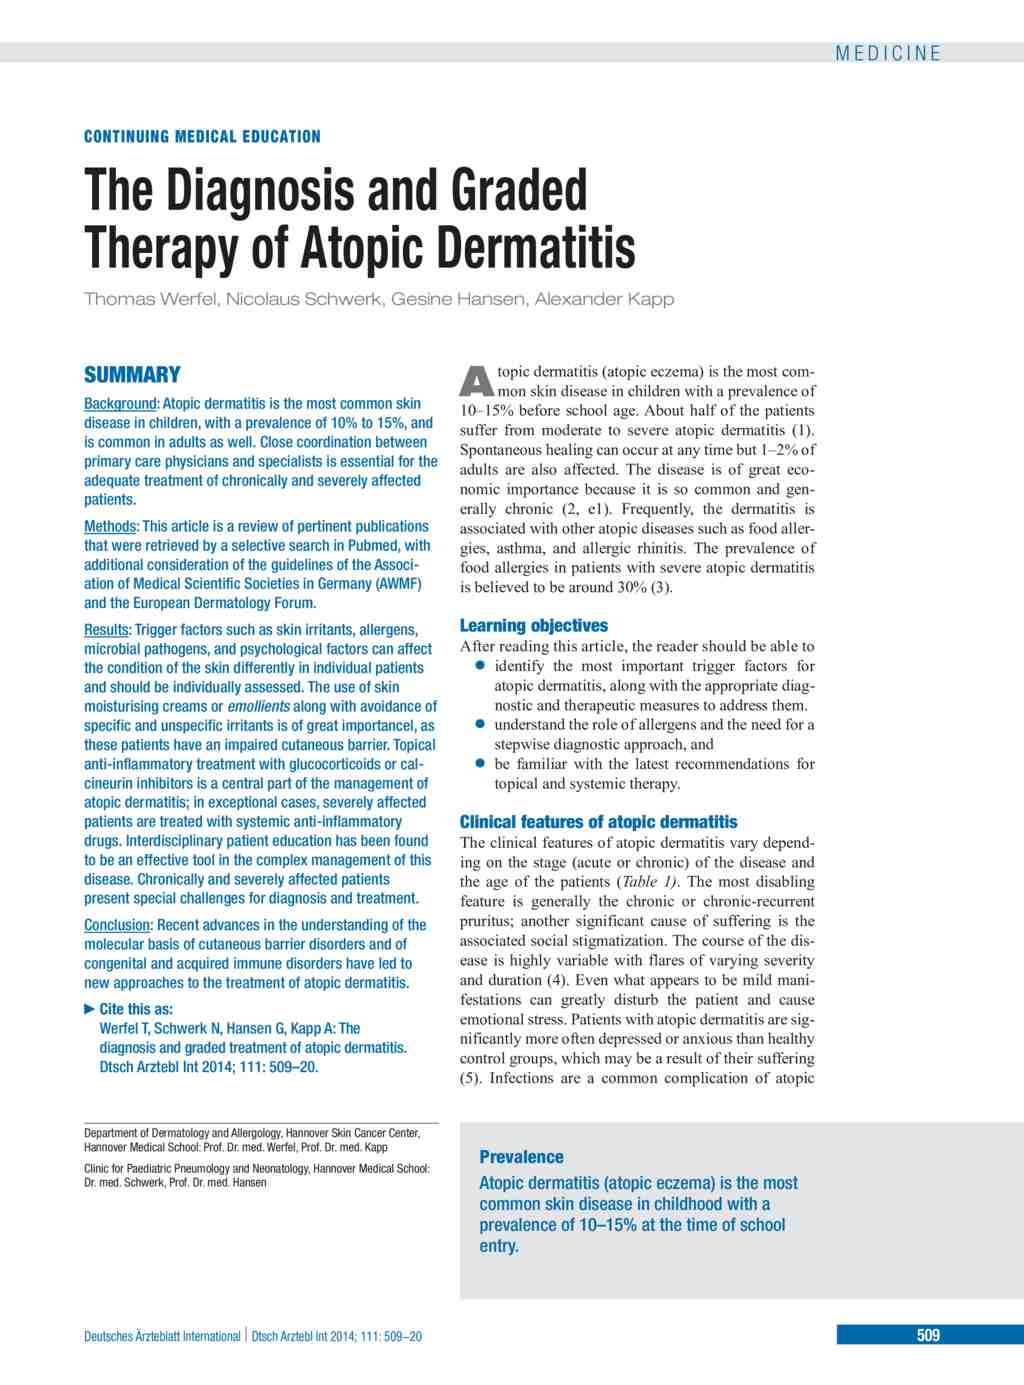 The Diagnosis and Graded Therapy of Atopic Dermatitis (21 07